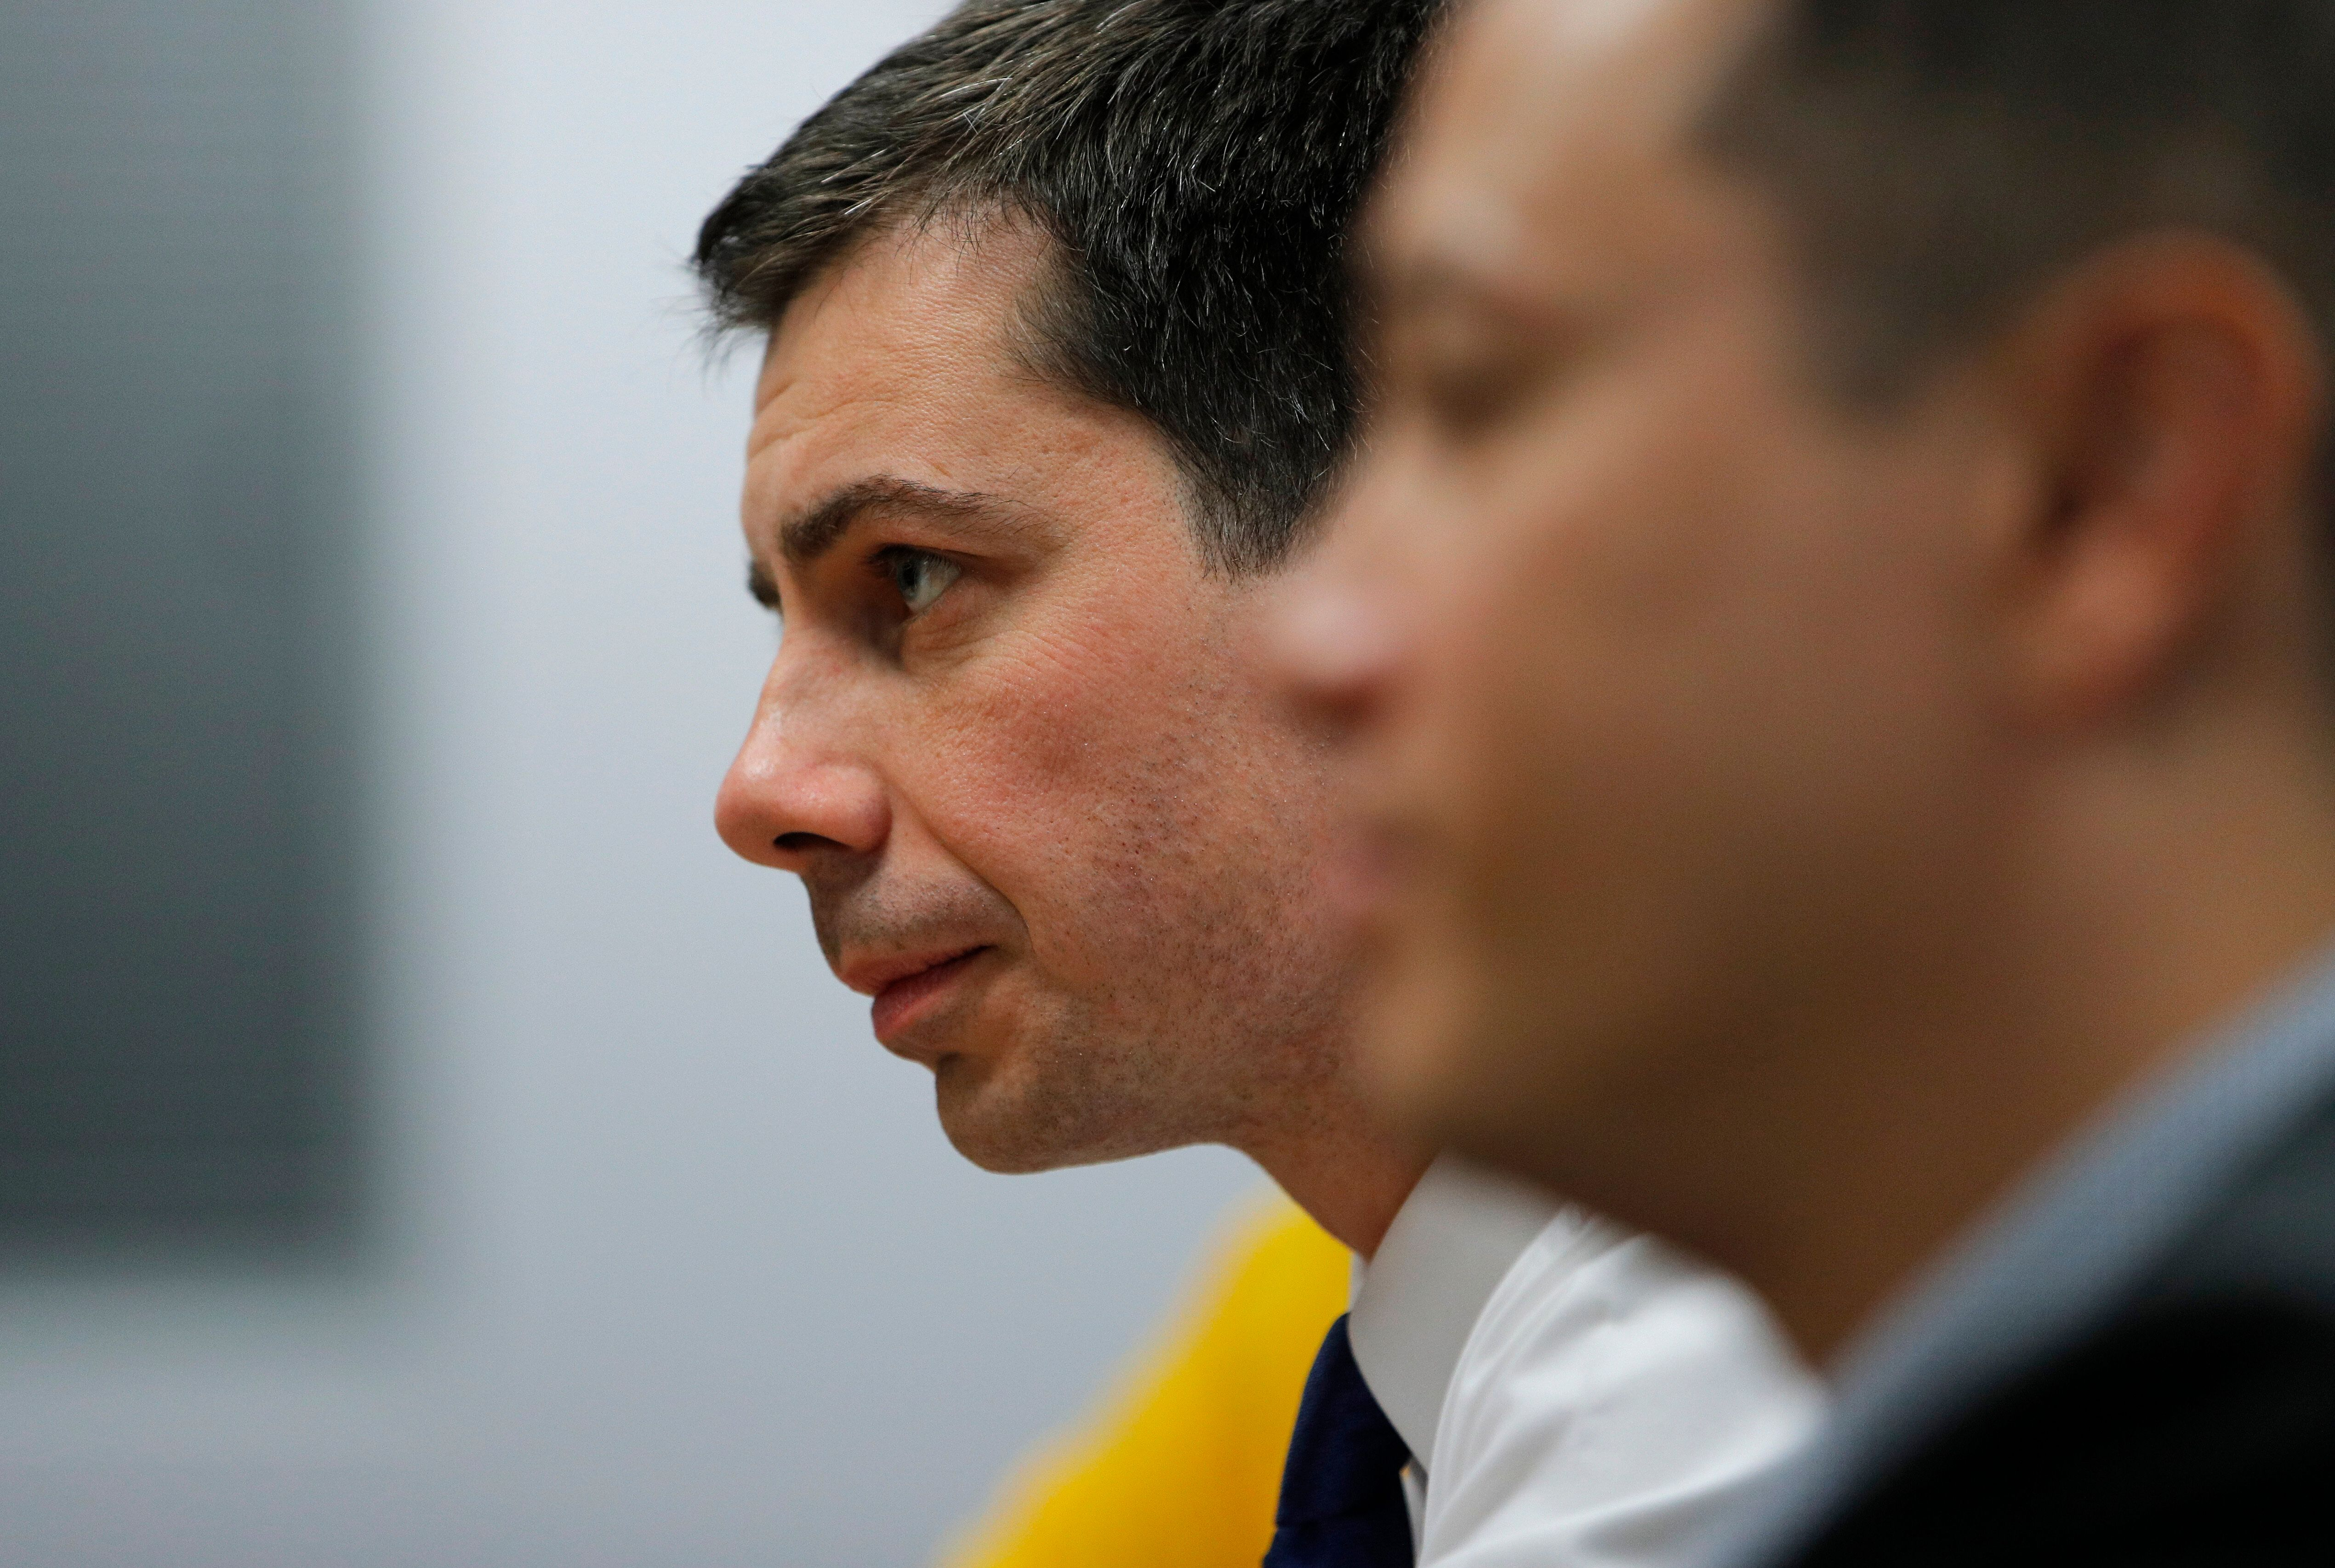 Pete Buttigieg Bundler Offers Influence Opportunity To Wealthy Donors: Report